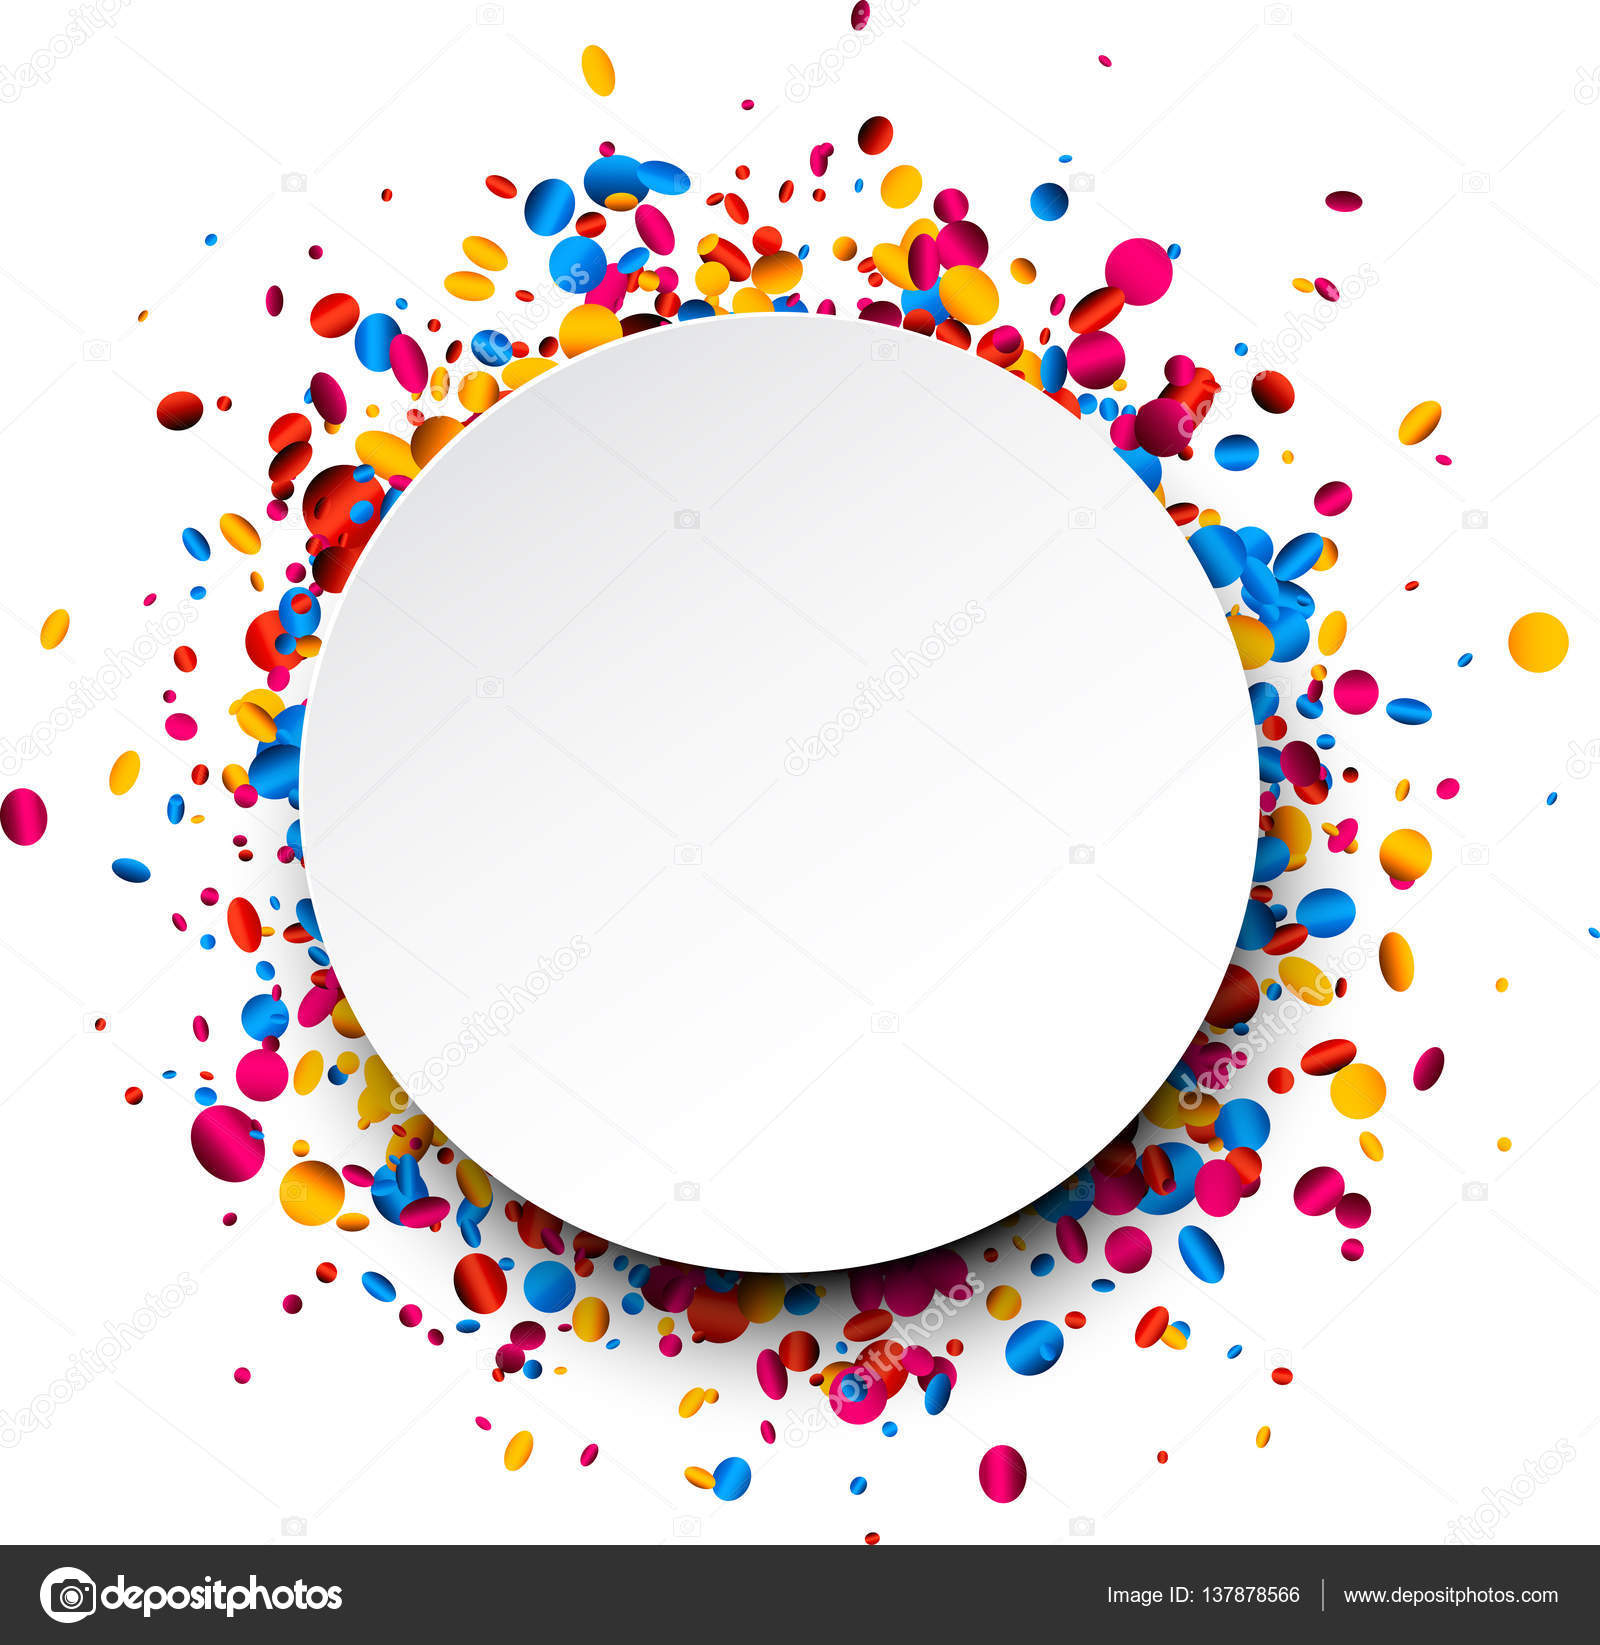 hight resolution of confetti clipart circle